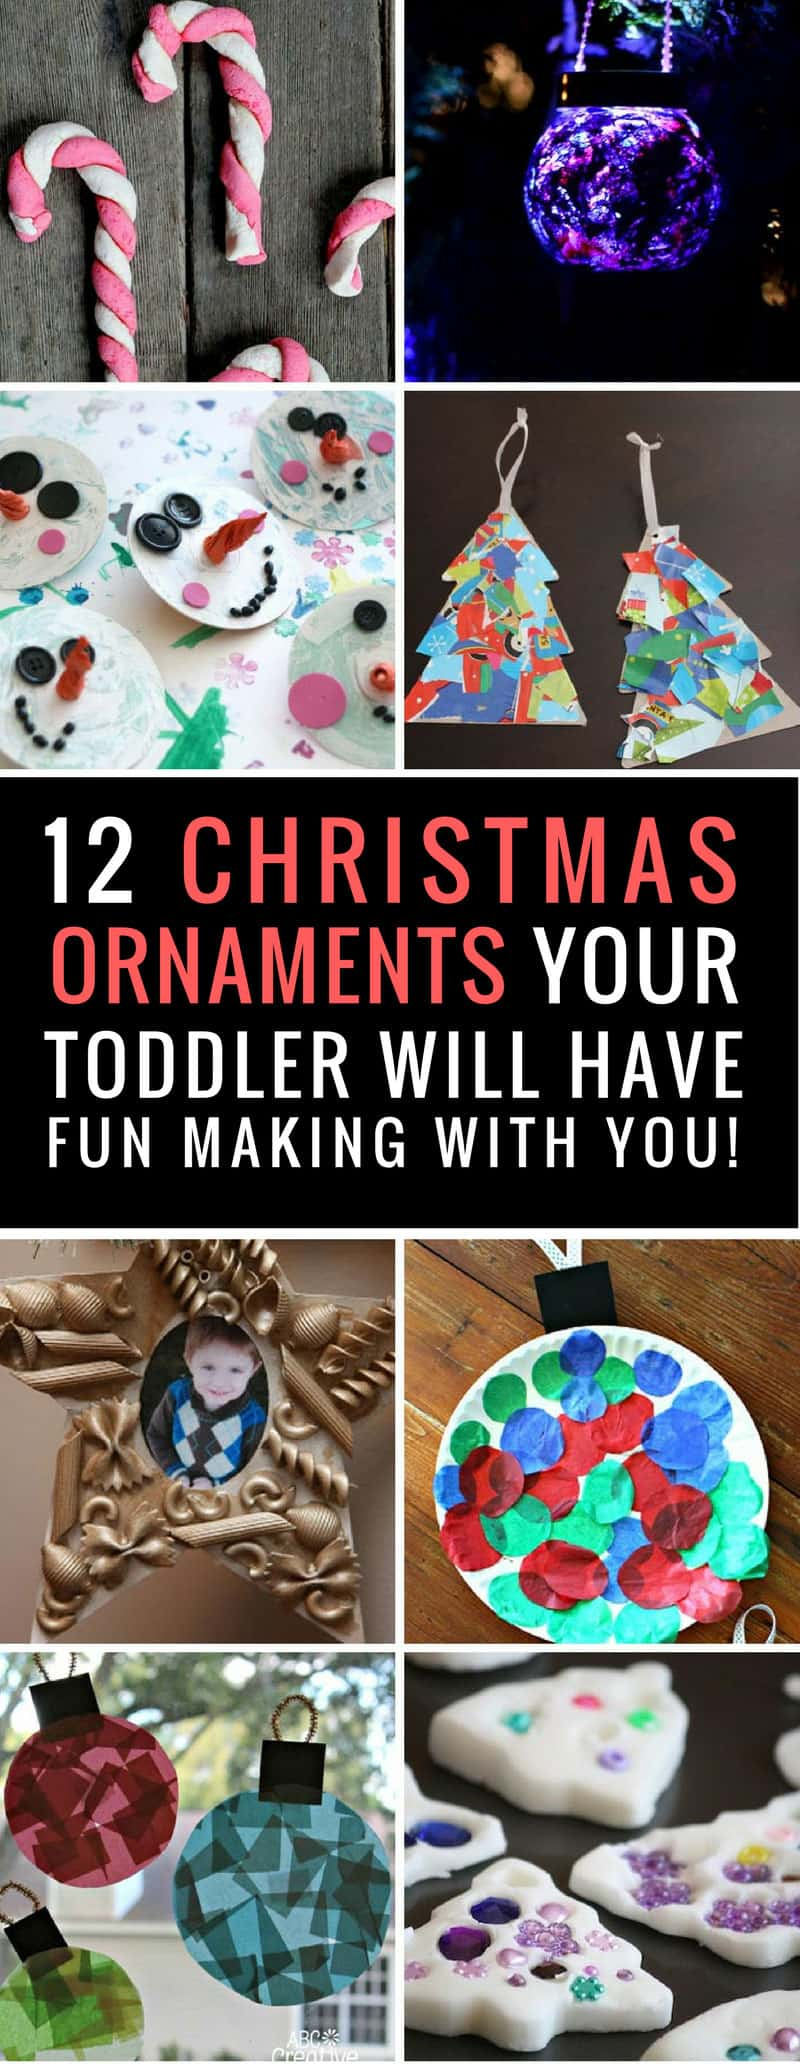 These Christmas ornaments for toddlers to make are so adorable and such fun to make - you need to try some of them!